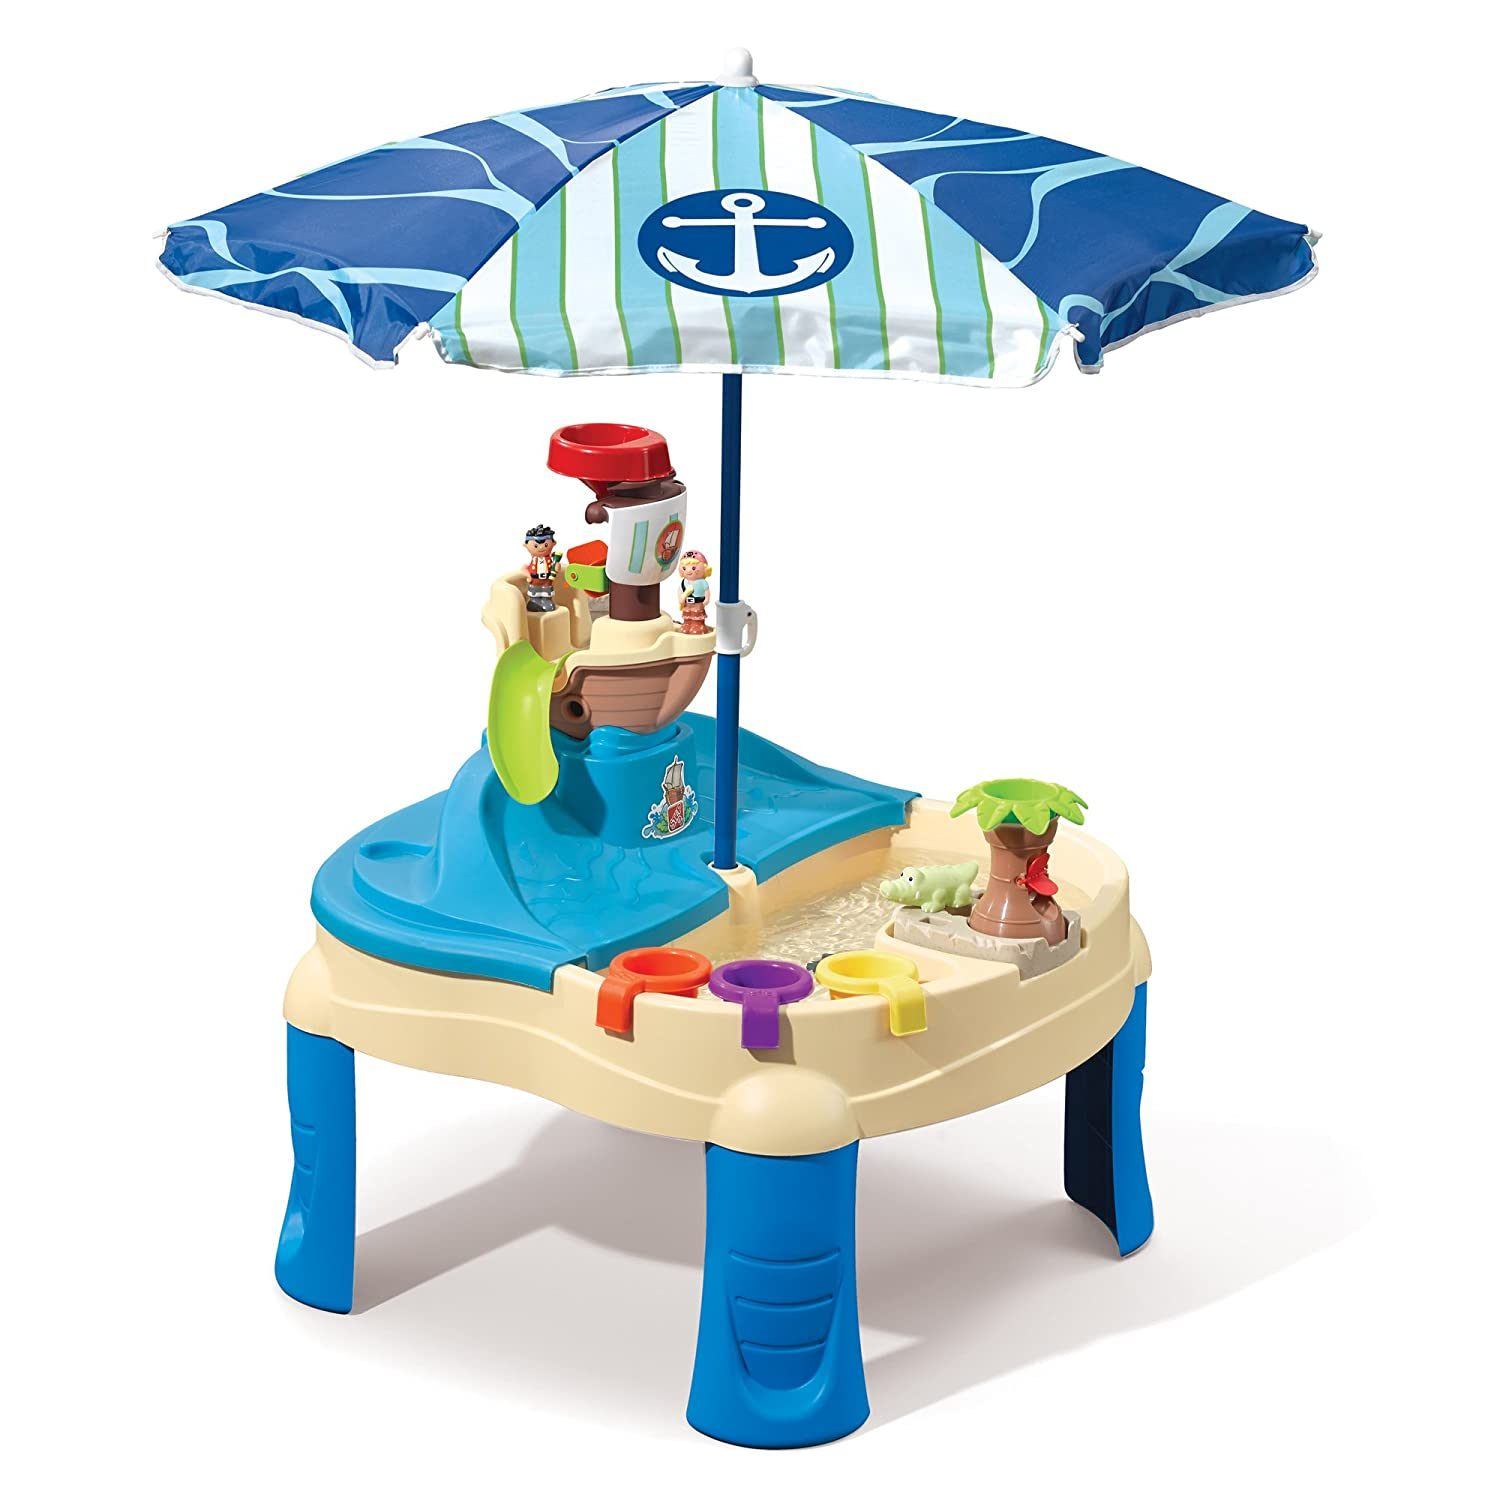 Step2 High Seas Adventure Sand Toys and Water Table with Umbrella